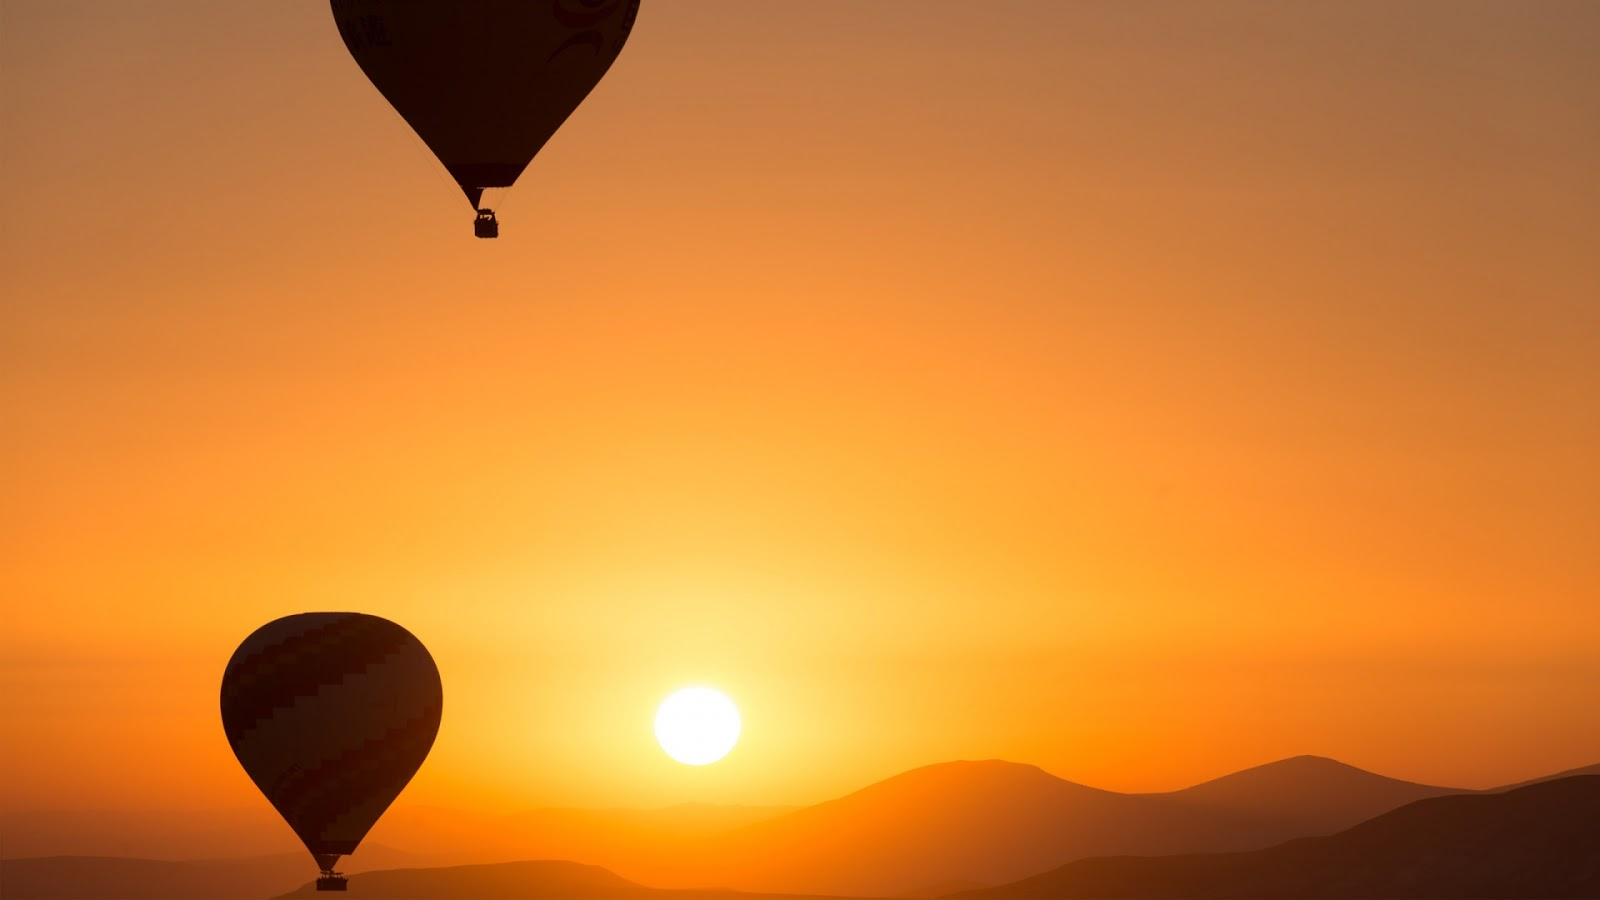 Hot Air Ballons Sunrise Android Wallpaper HD